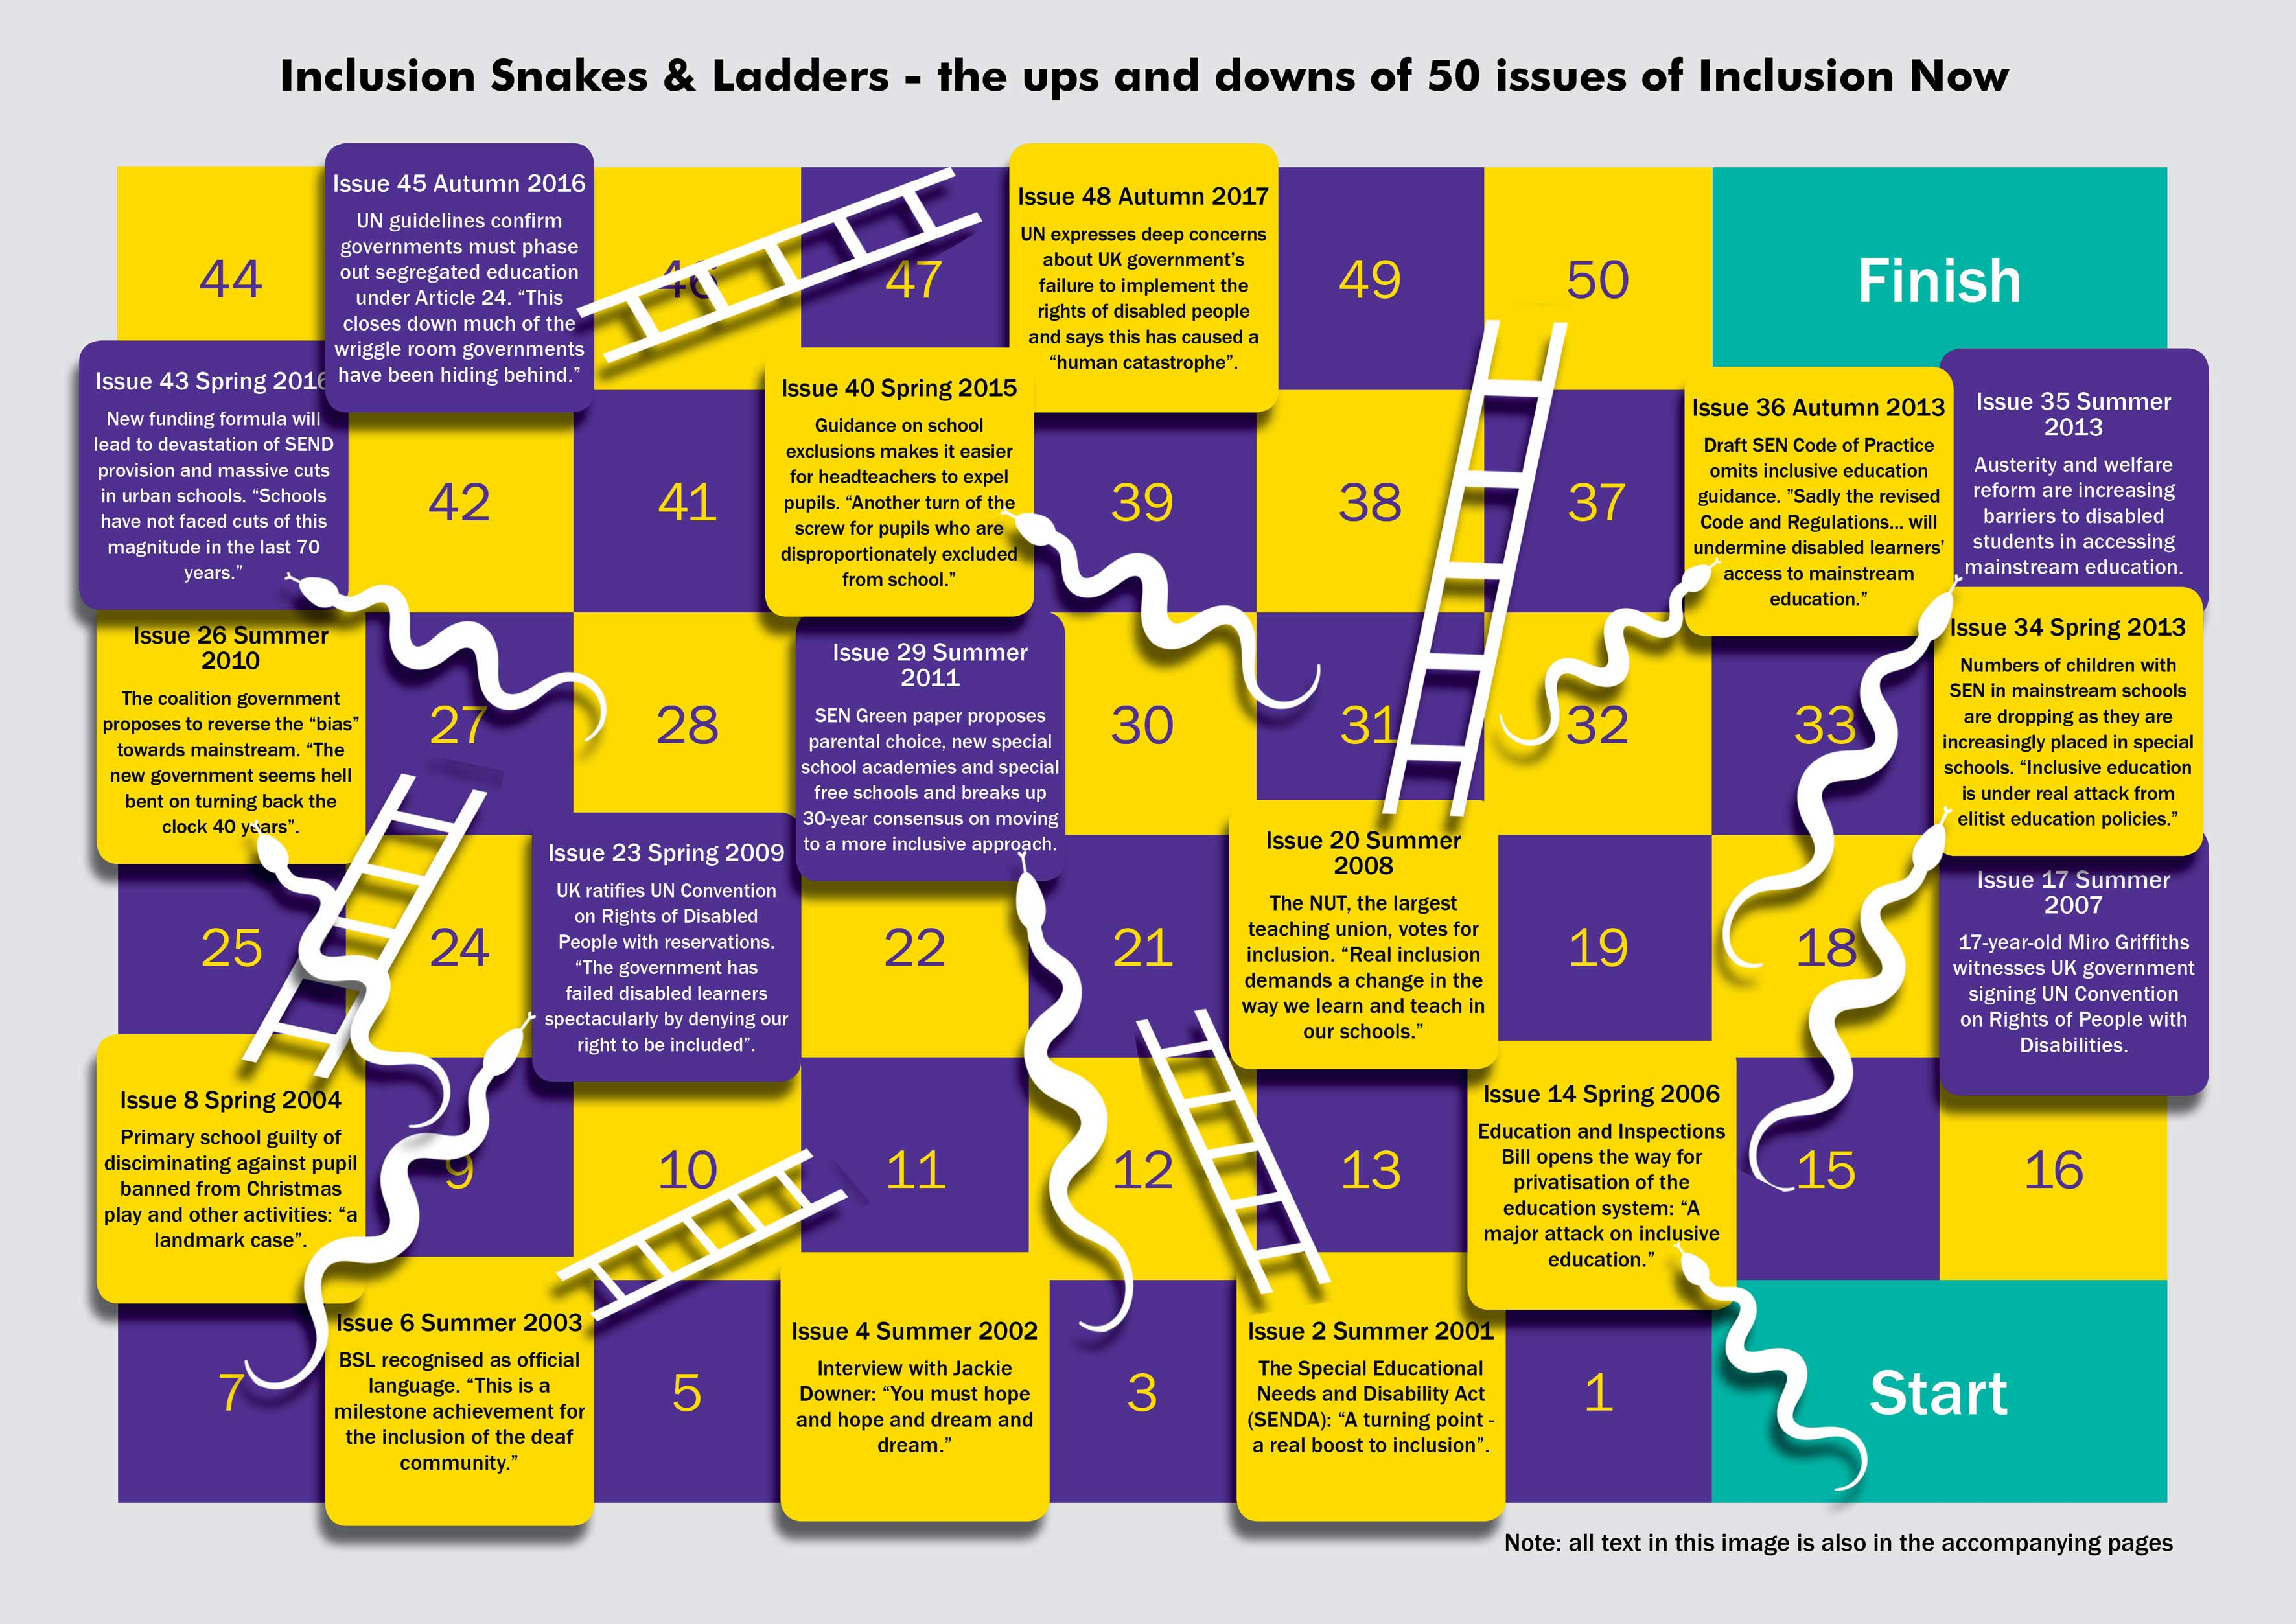 Graphic of a snakes and ladders board with events from past issues of Inclusion Now. All the events listed are also in the timeline below.